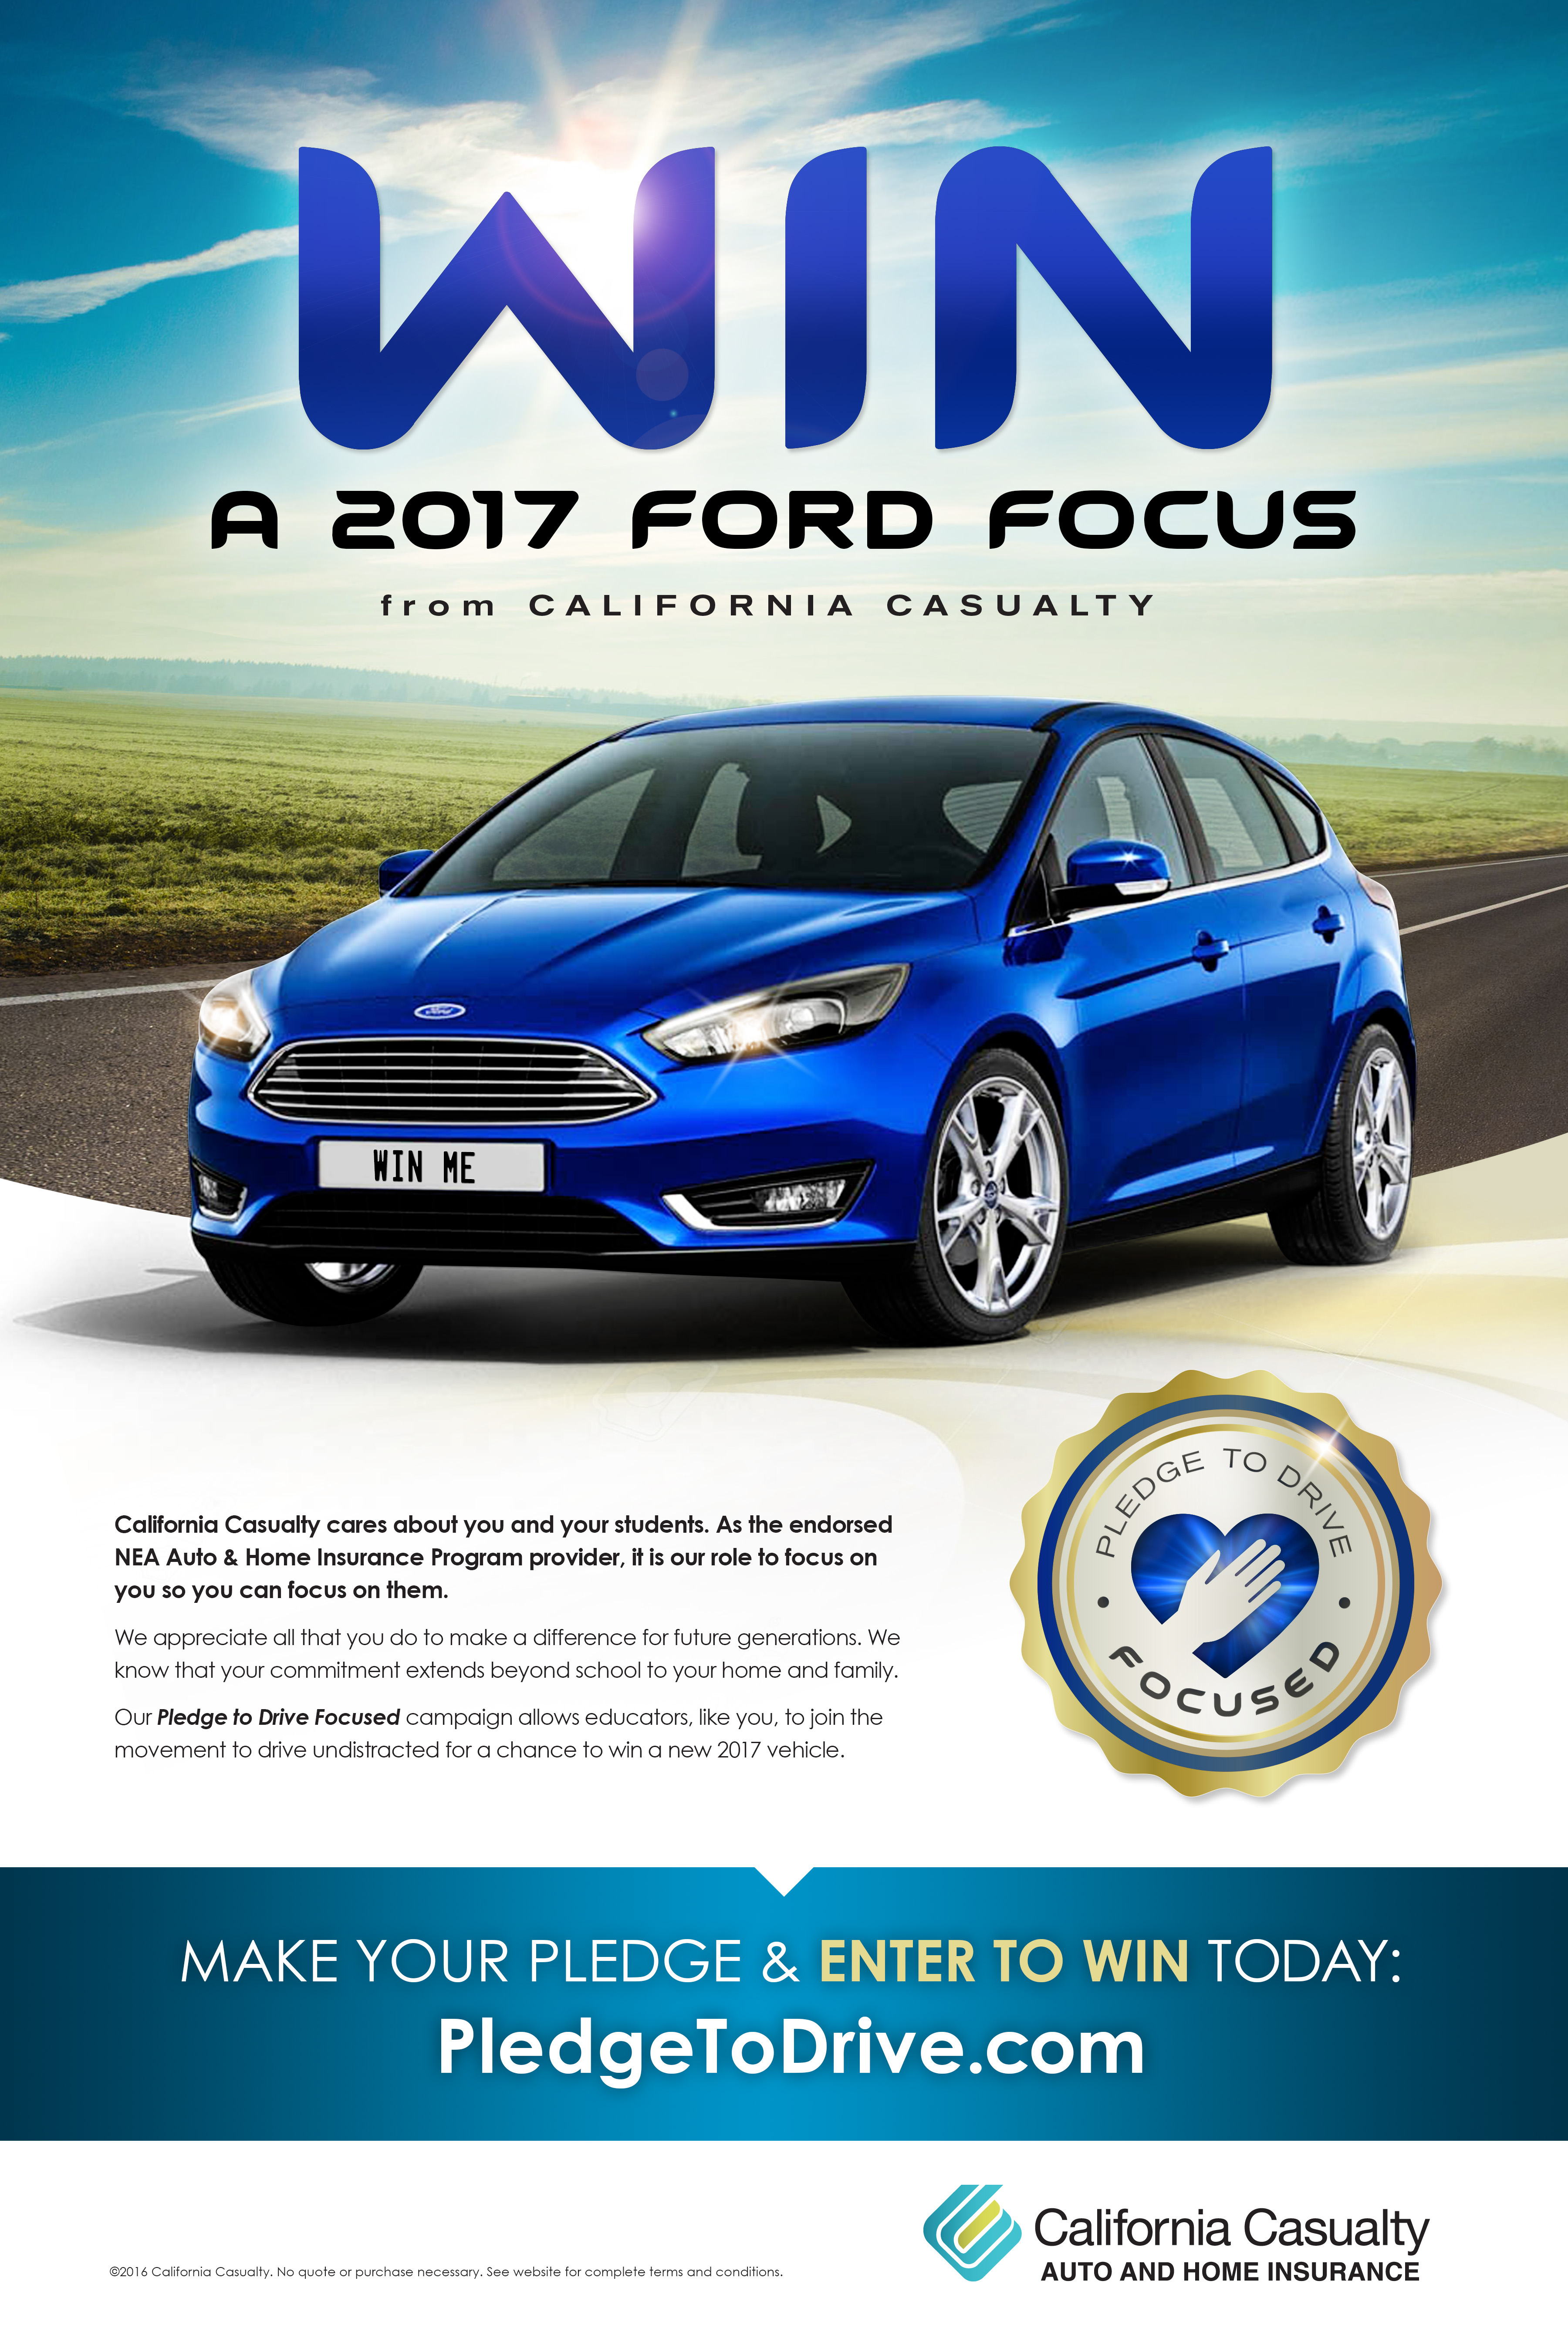 Stay Focused: Win a Car from California Casualty